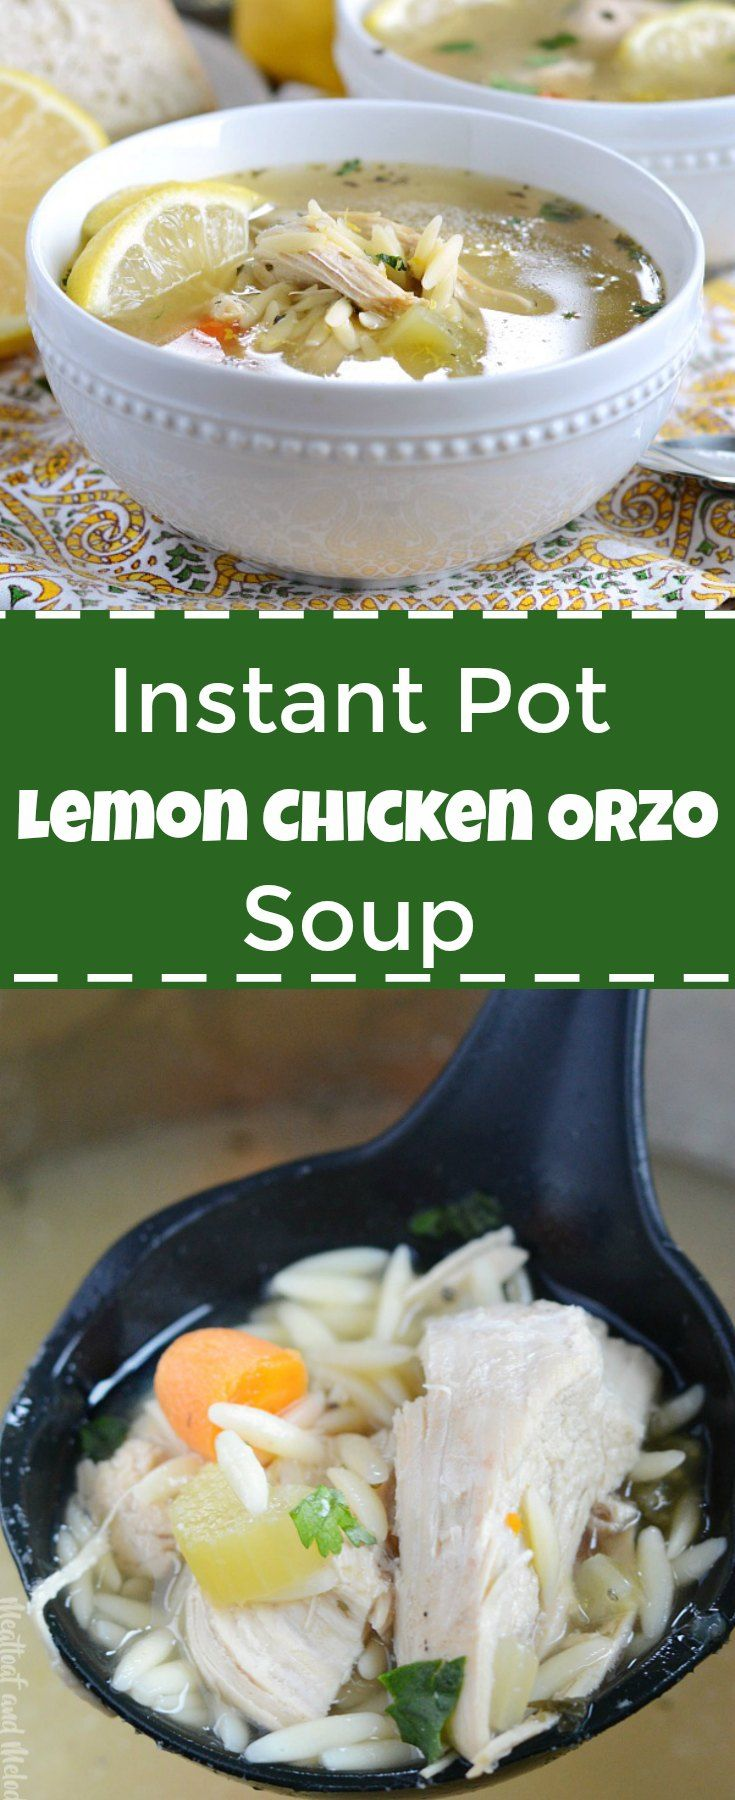 Instant Pot Lemon Chicken Orzo Soup - Quick and easy homemade chicken soup recipe made in the pressure cooker! from Meatloaf and Melodrama #instantpot #pressurecooker #easydinner